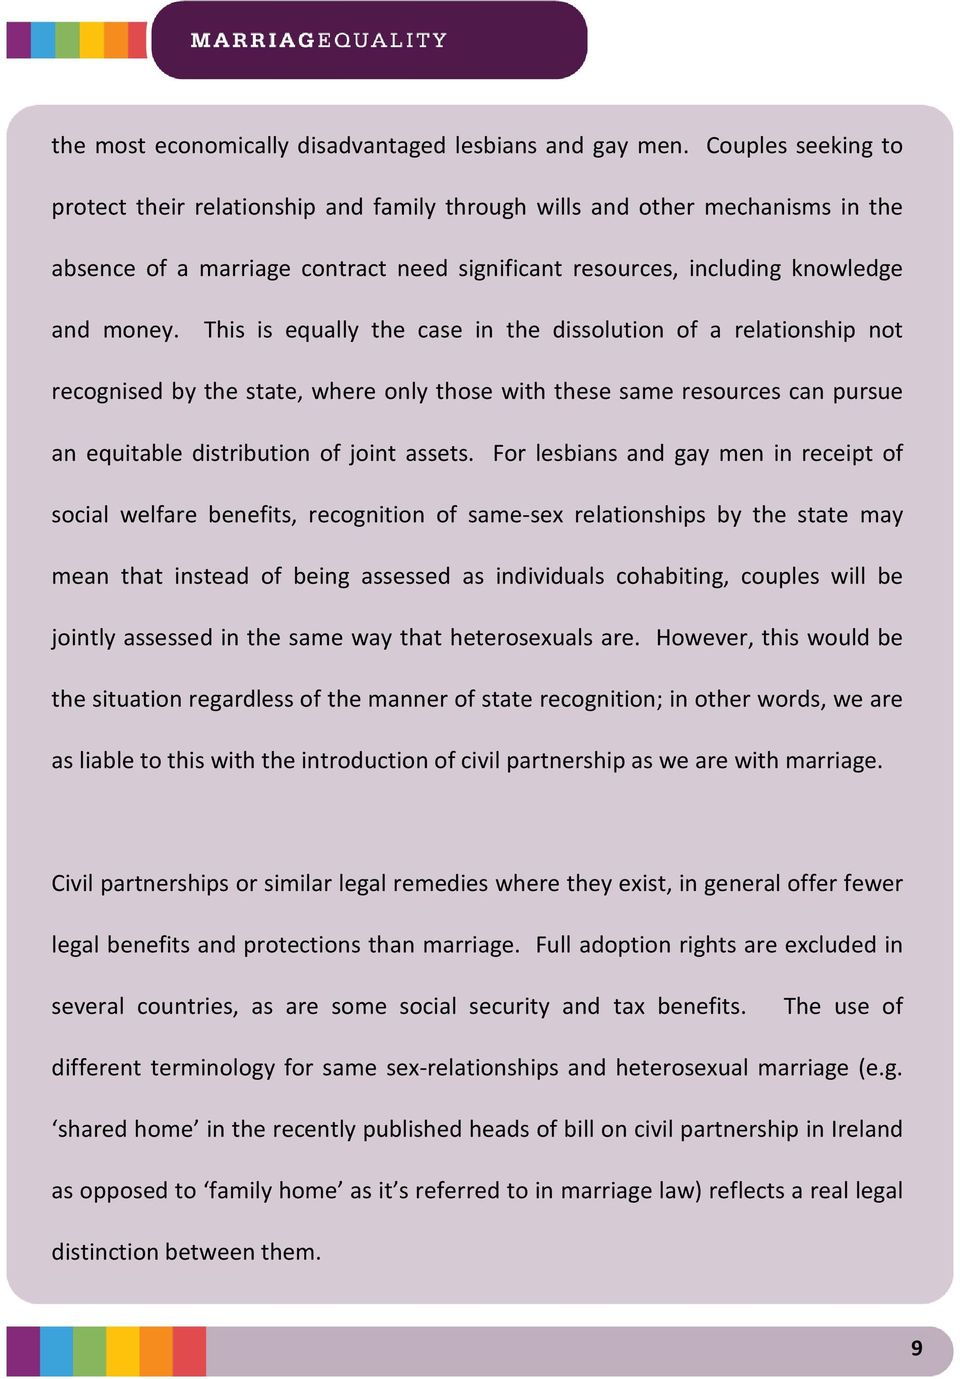 This is equally the case in the dissolution of a relationship not recognised by the state, where only those with these same resources can pursue an equitable distribution of joint assets.